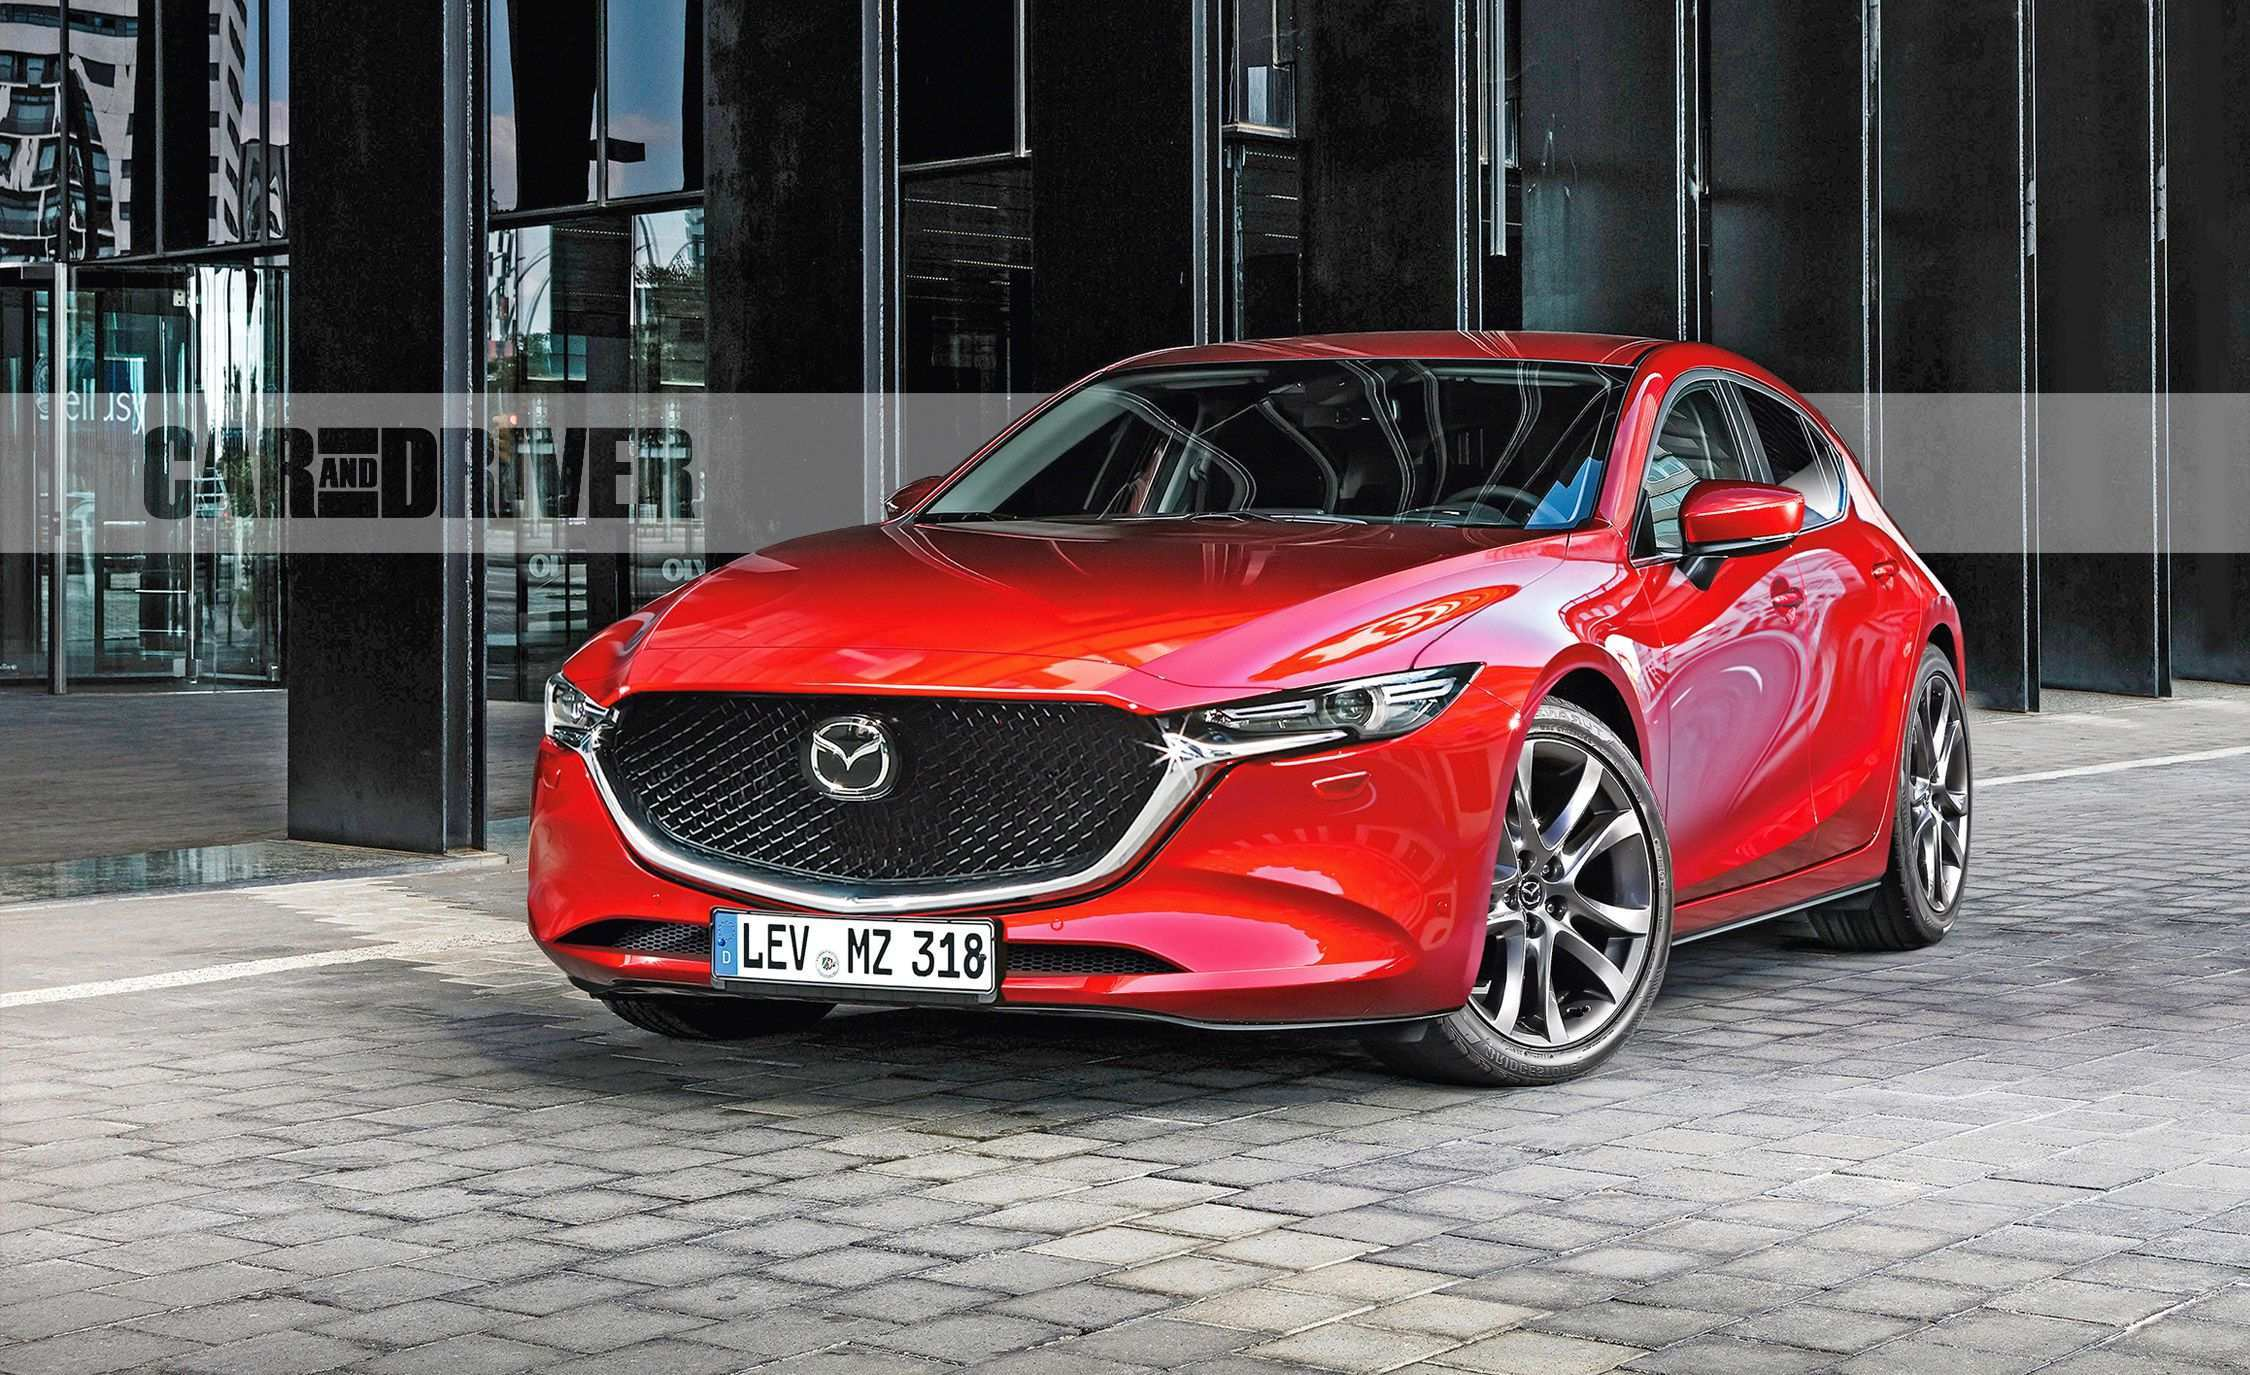 65 Great 2020 Mazda 3 Sedan Concept with 2020 Mazda 3 Sedan